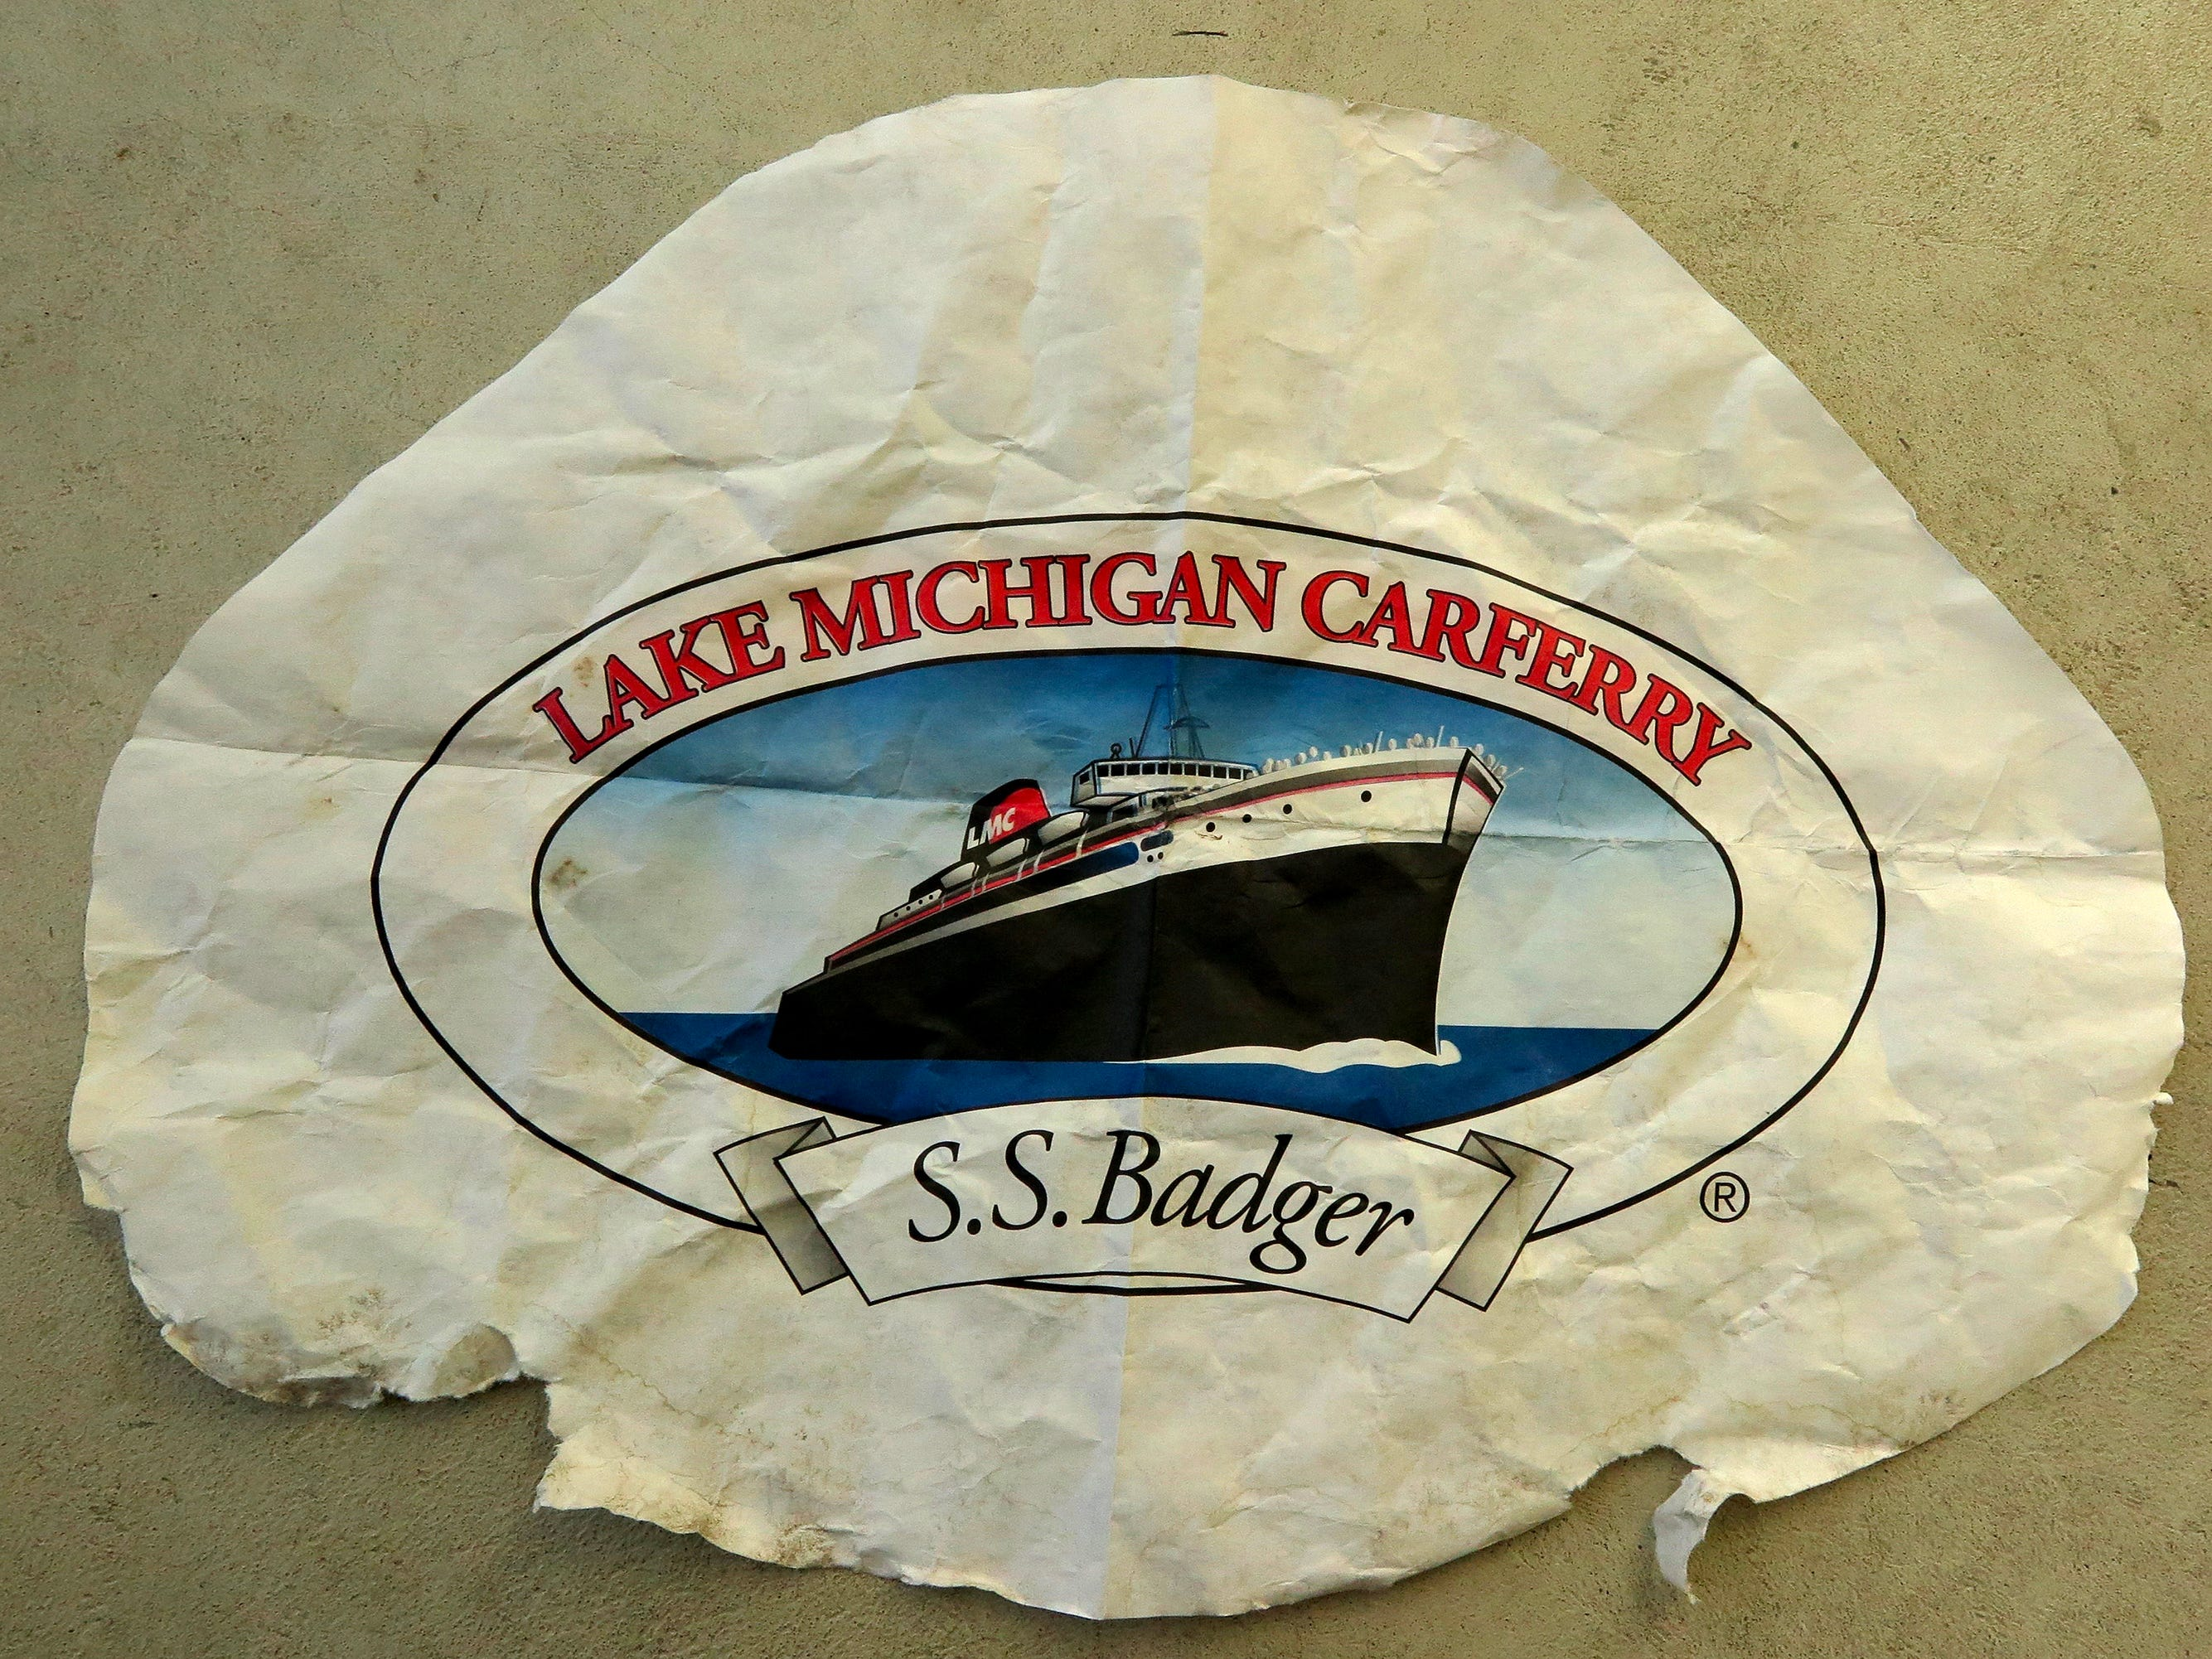 This the front side of a placemat used to write a message placed in a bottle and tossed in Lake Michigan in 1998. The note remained dry and readable during its journey of 21 years.